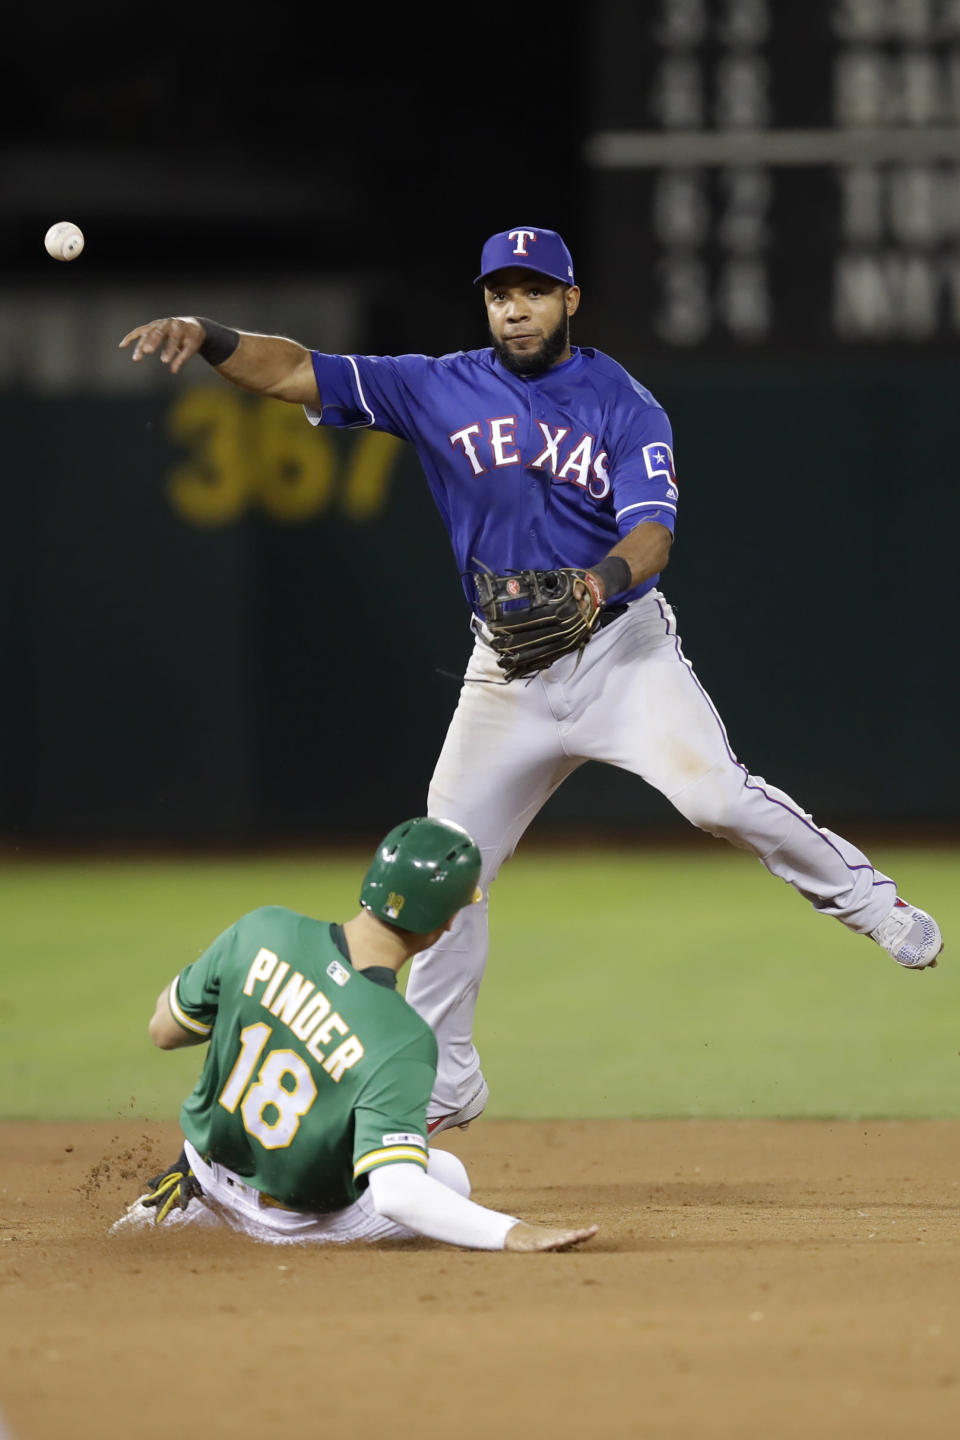 Texas Rangers' Elvis Andrus throws over Oakland Athletics' Chad Pinder (18) to complete a double play in the fourth inning of a baseball game Friday, Sept. 20, 2019, in Oakland, Calif. Sheldon Neuse was out at first. (AP Photo/Ben Margot)